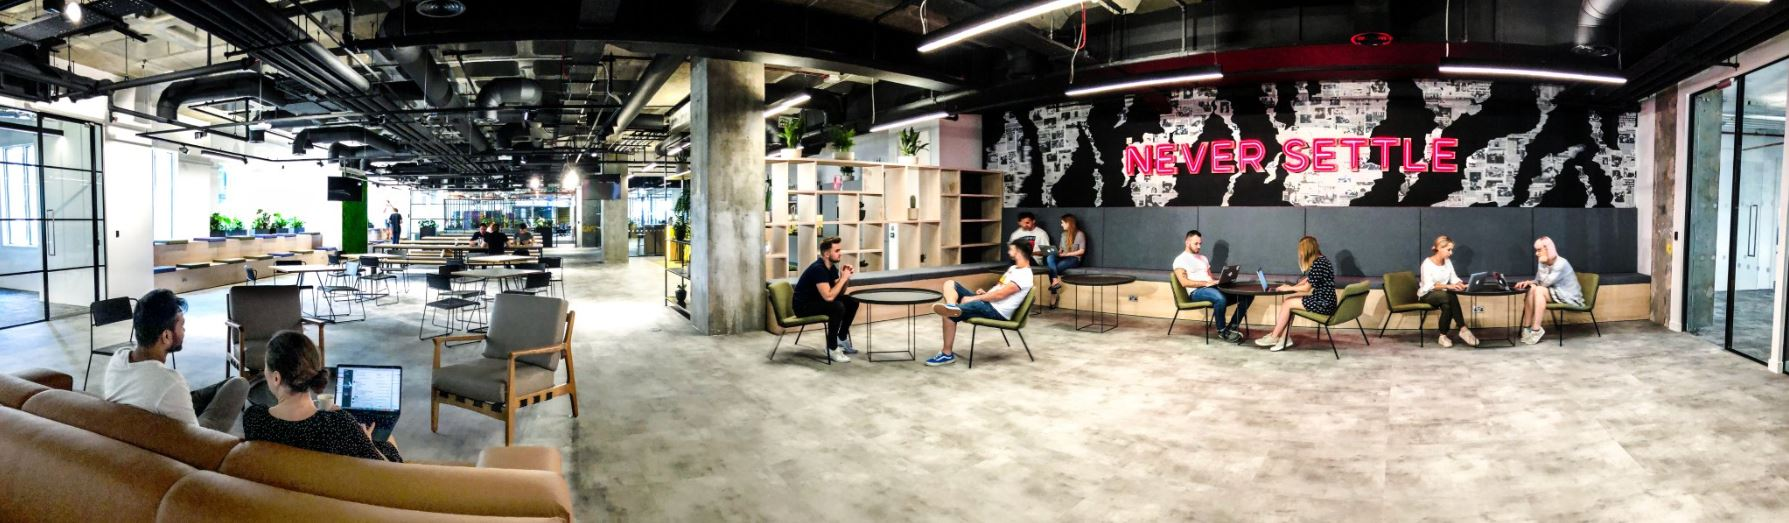 Revolut London office fit-out